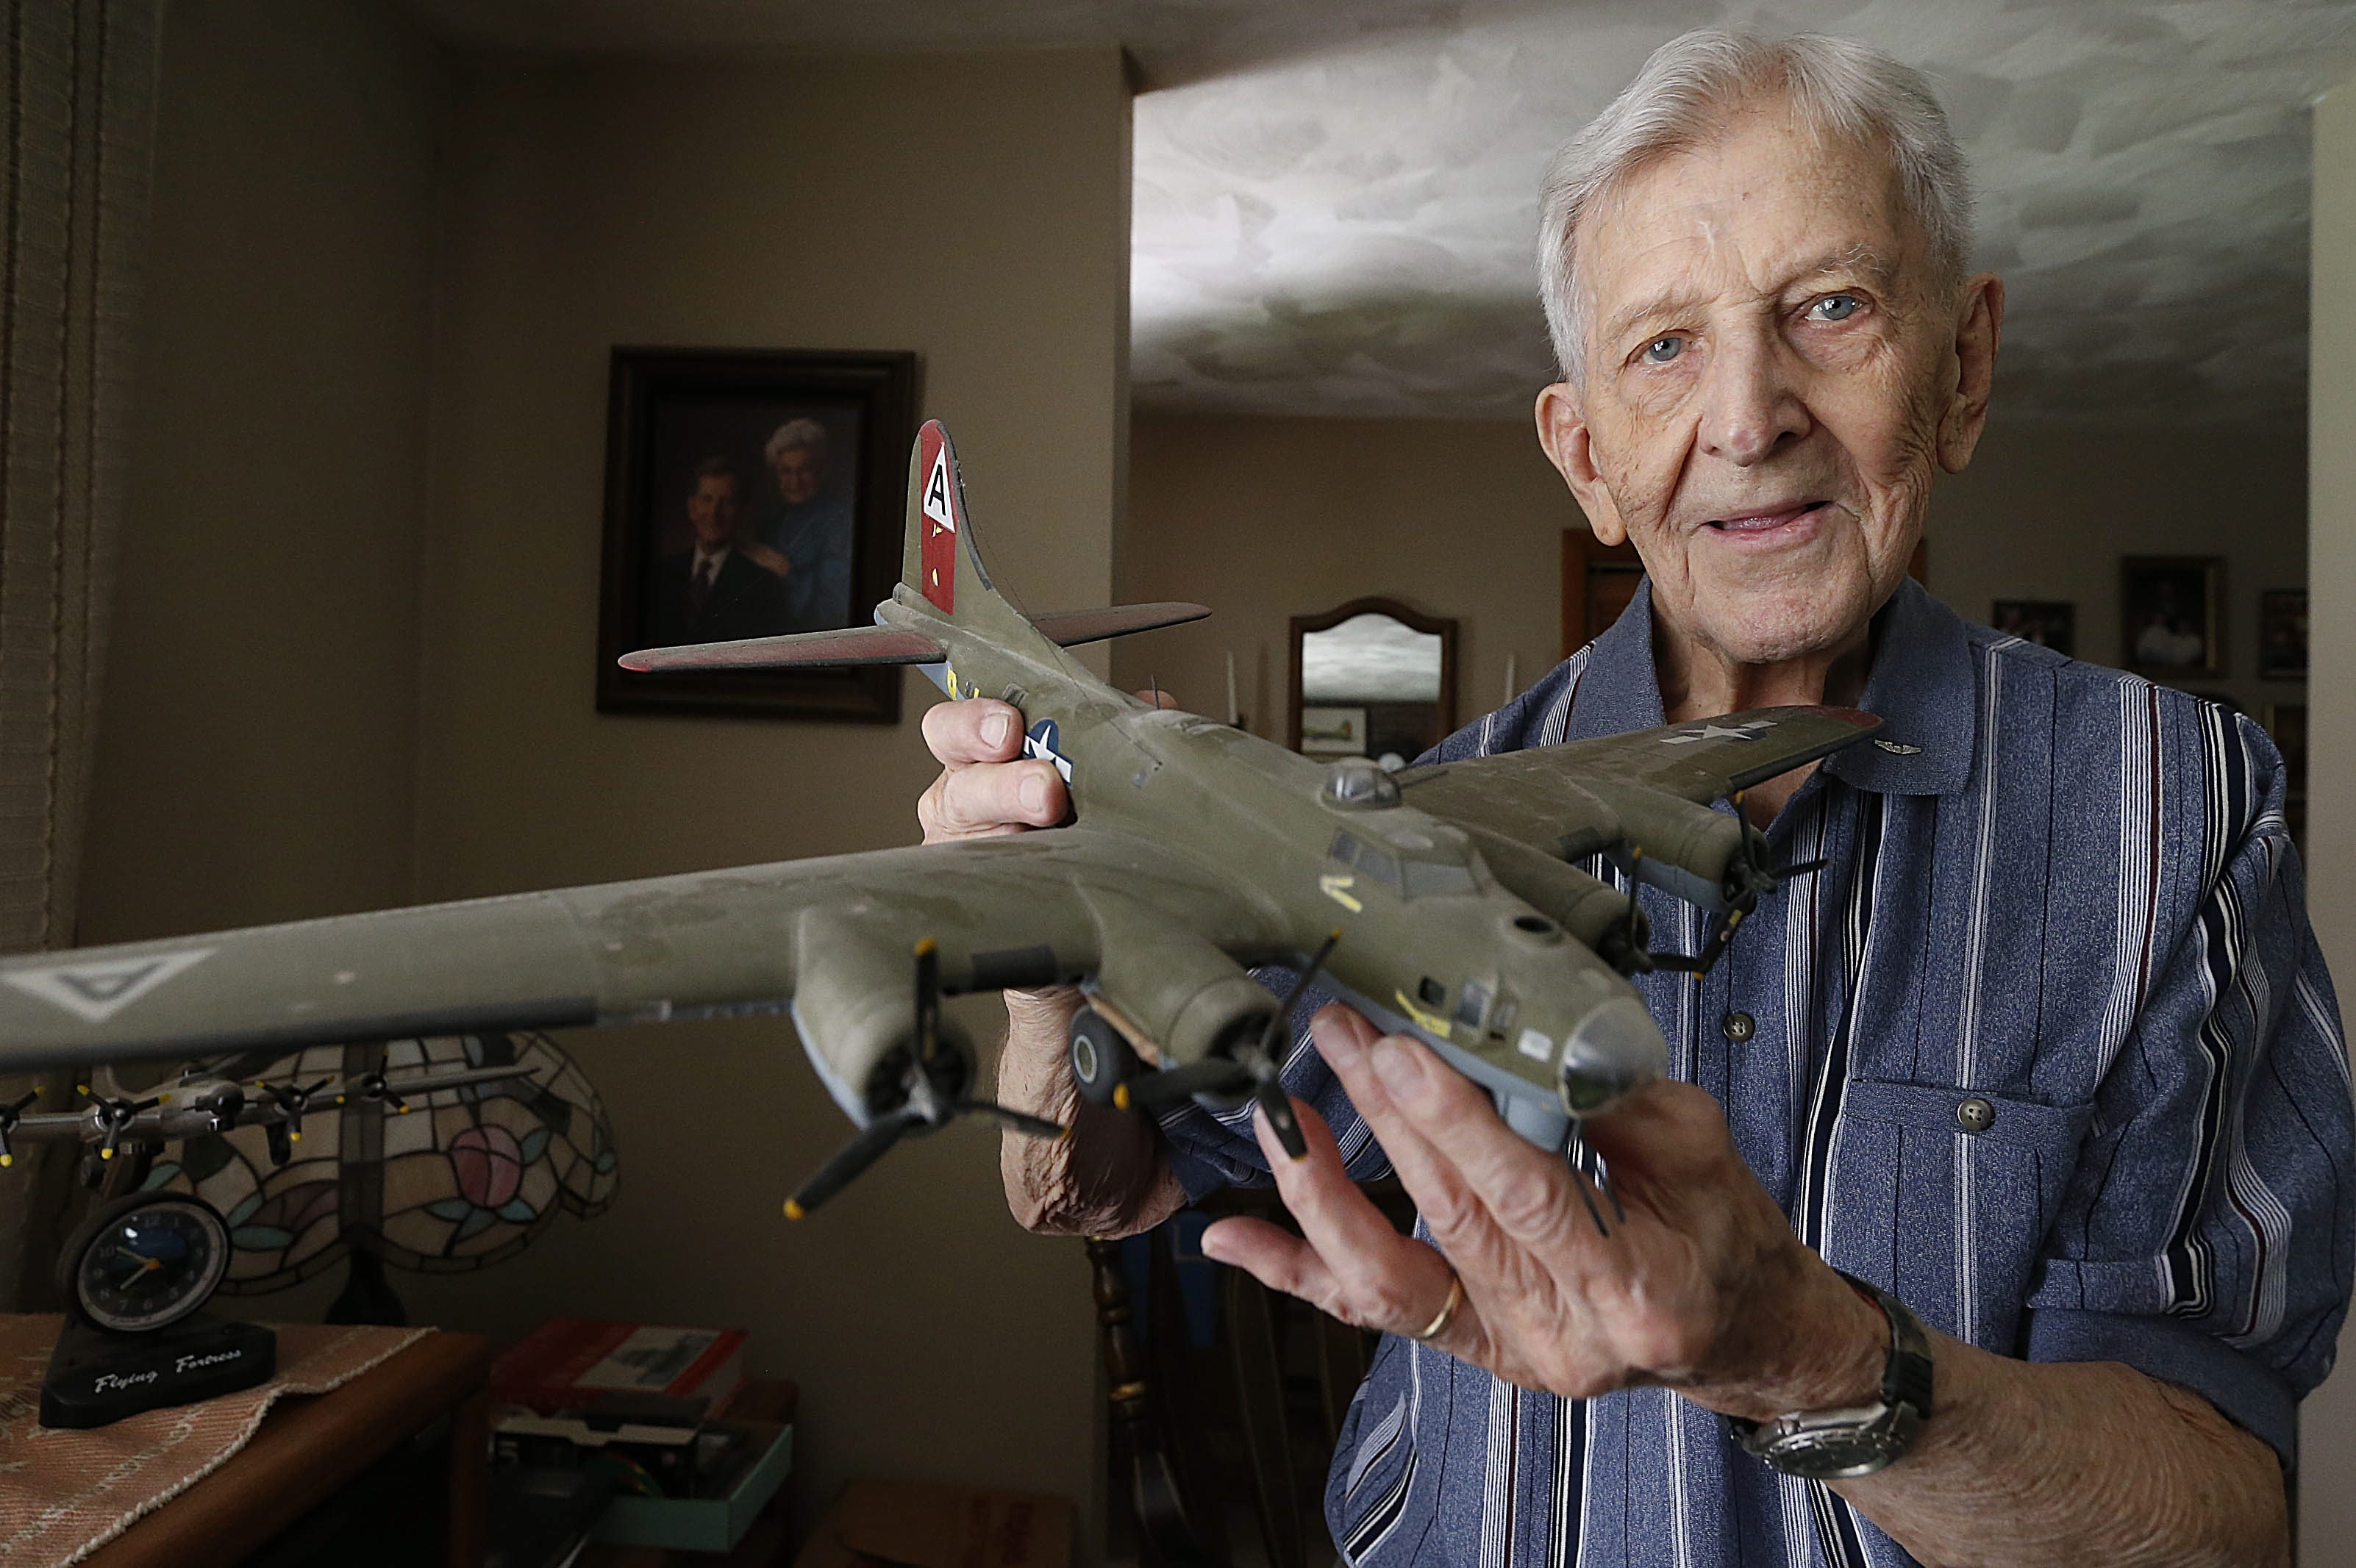 Bill Strapko, 95, a B-17 bomber pilot during World War II, reunited with members of the Tuskegee Airmen on Saturday to reminisce about the 1945 bombing of Berlin.